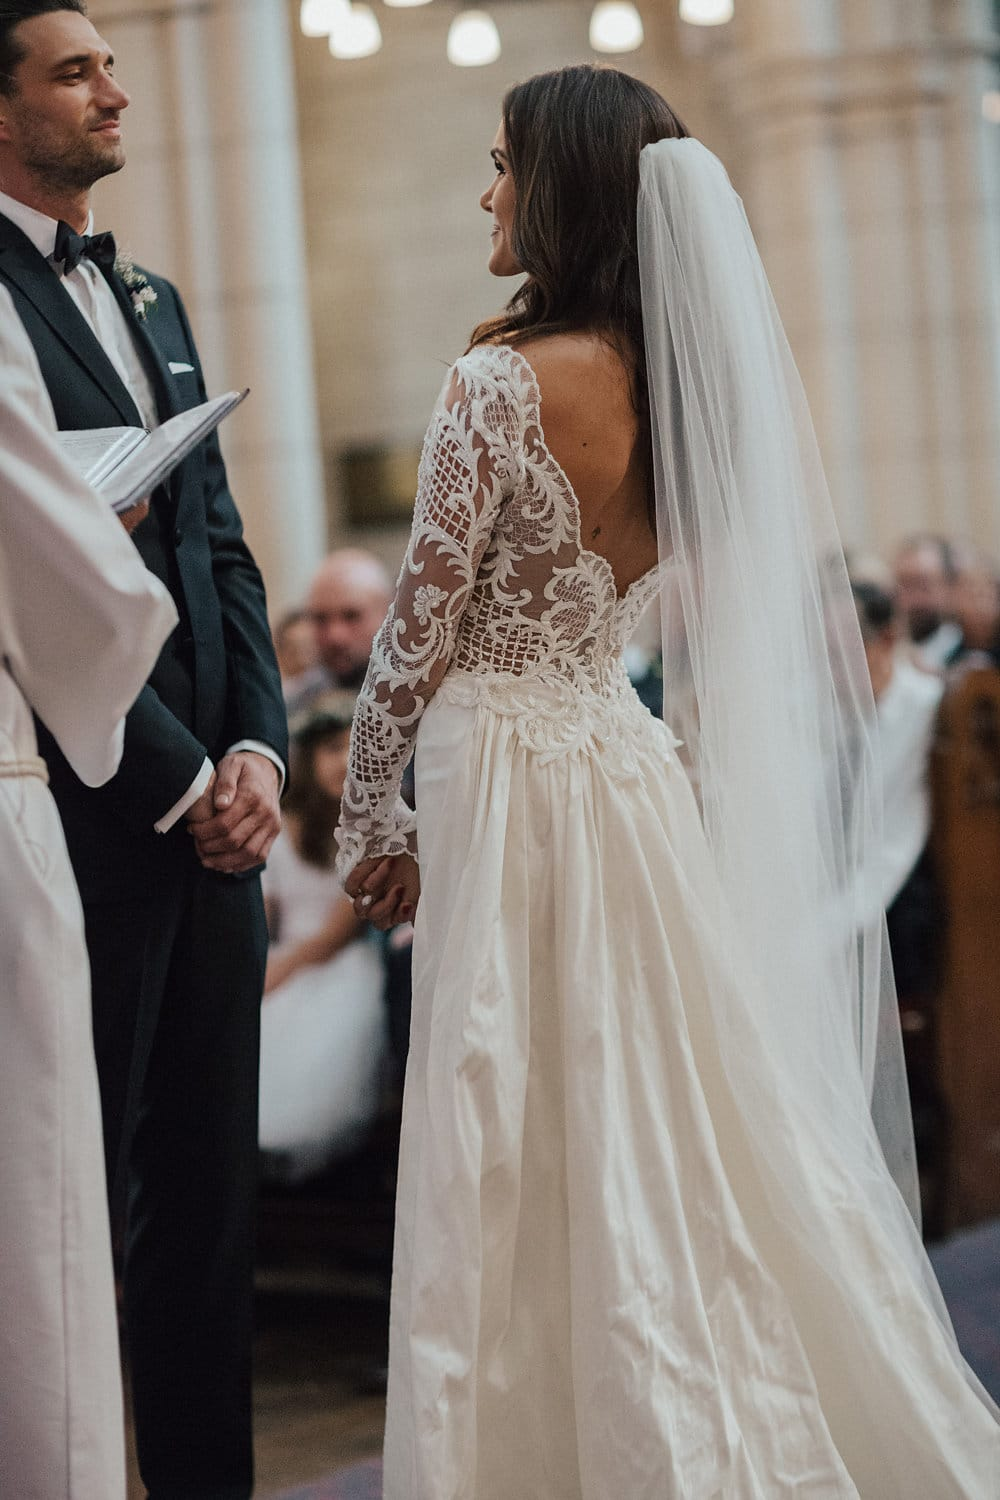 Hannah wearing bespoke Vinka ; her gown made in beaded lace has a low V back